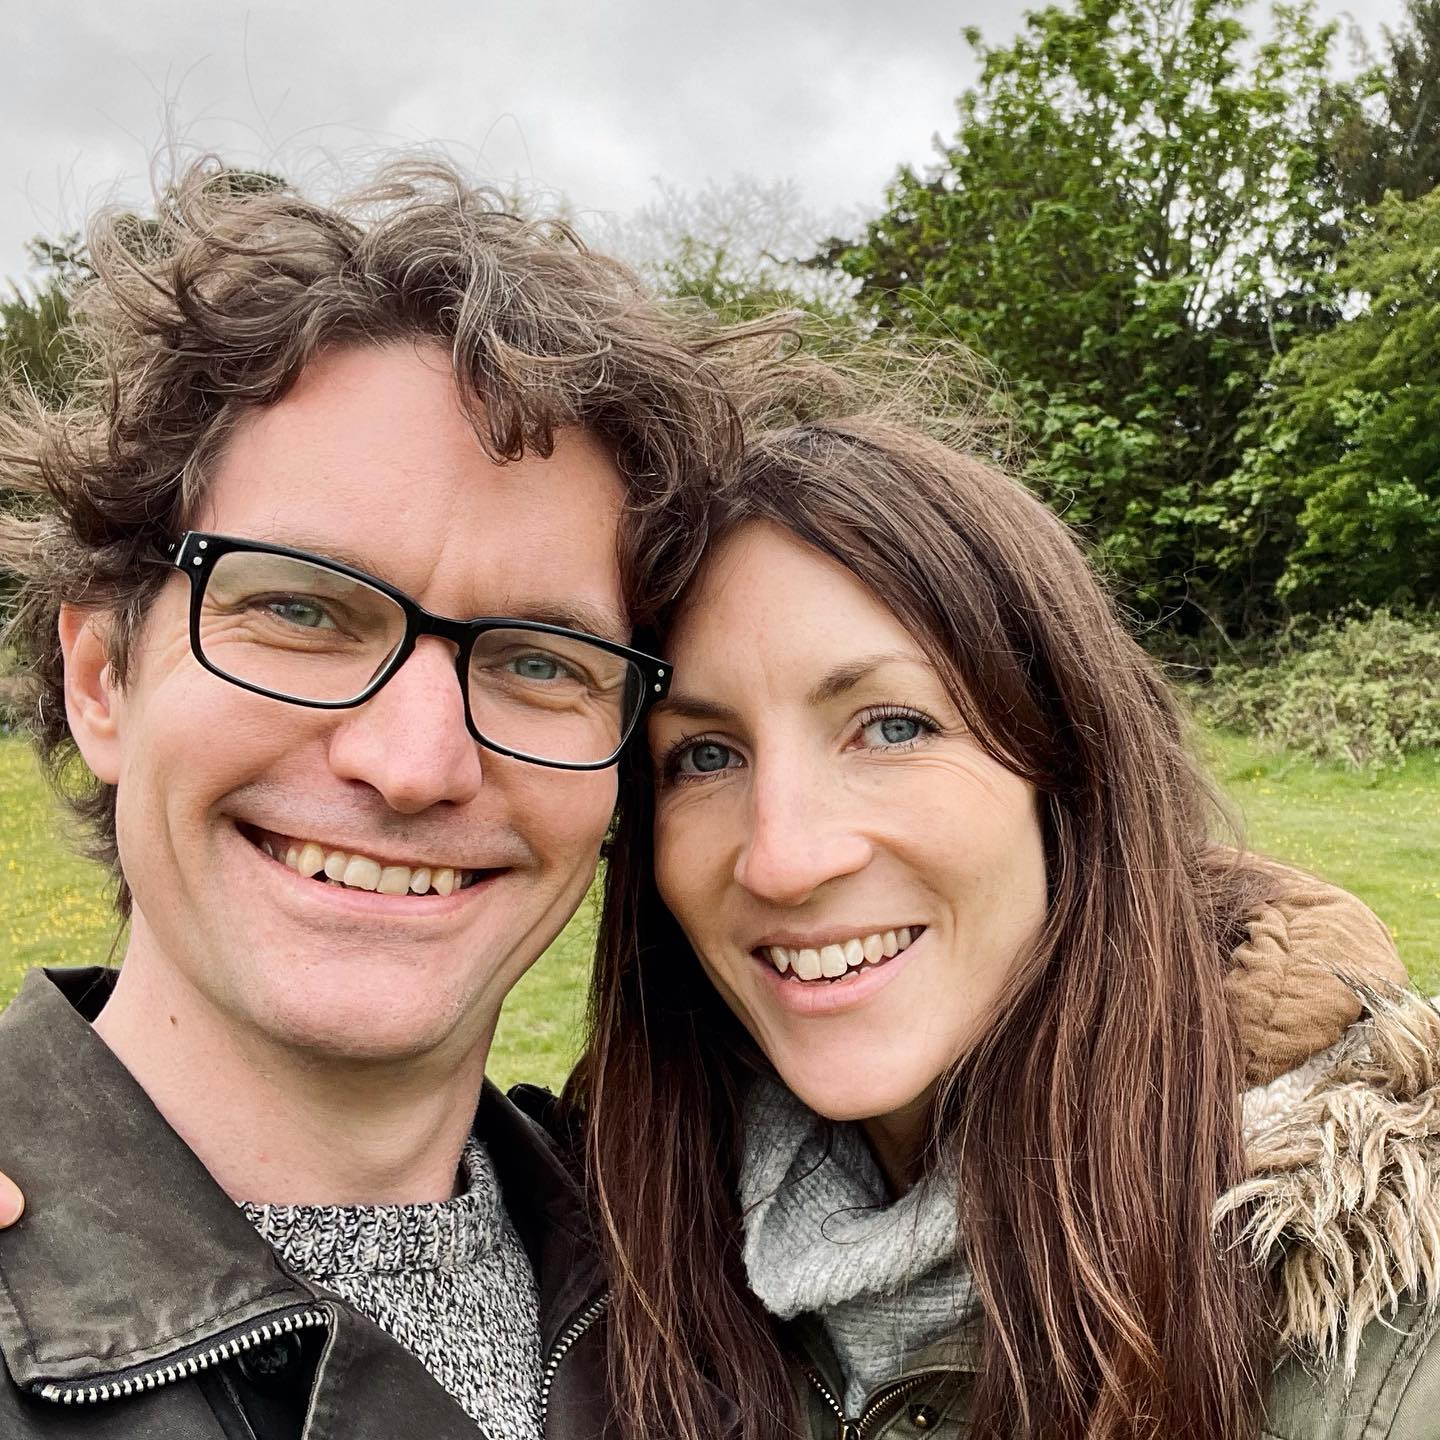 After two months of preparing, we're finally off!  We're off living the digital nomad life as we start on the road to film Castles & Ruins season one.   Come behind the scenes with us at patreon.com/thewayfinder